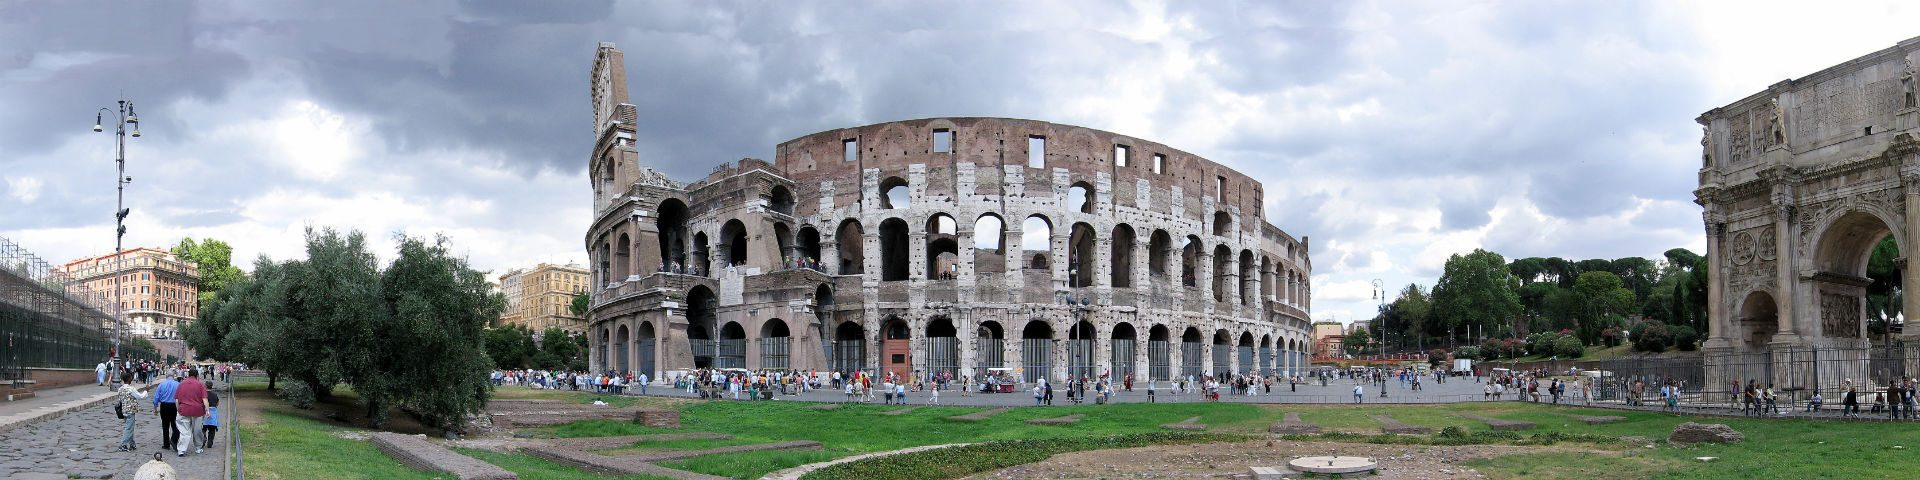 Colosseum Private Tours